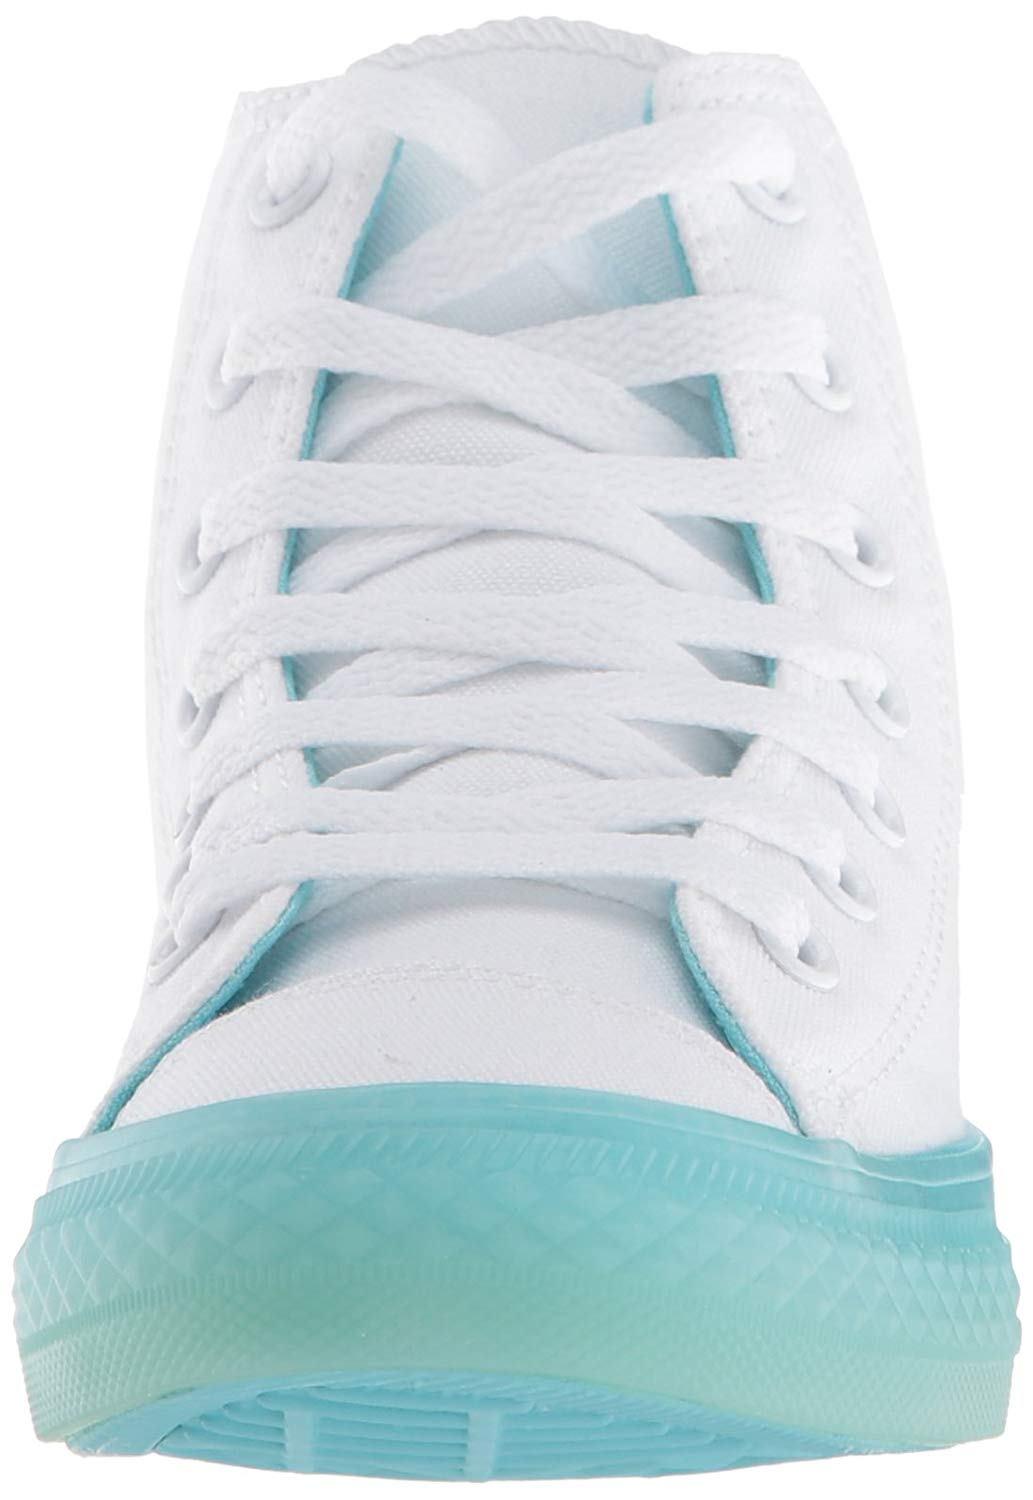 Details about Converse Kids' Chuck Taylor All Star Translucent, WhiteBleached Aqua, Size 1.0